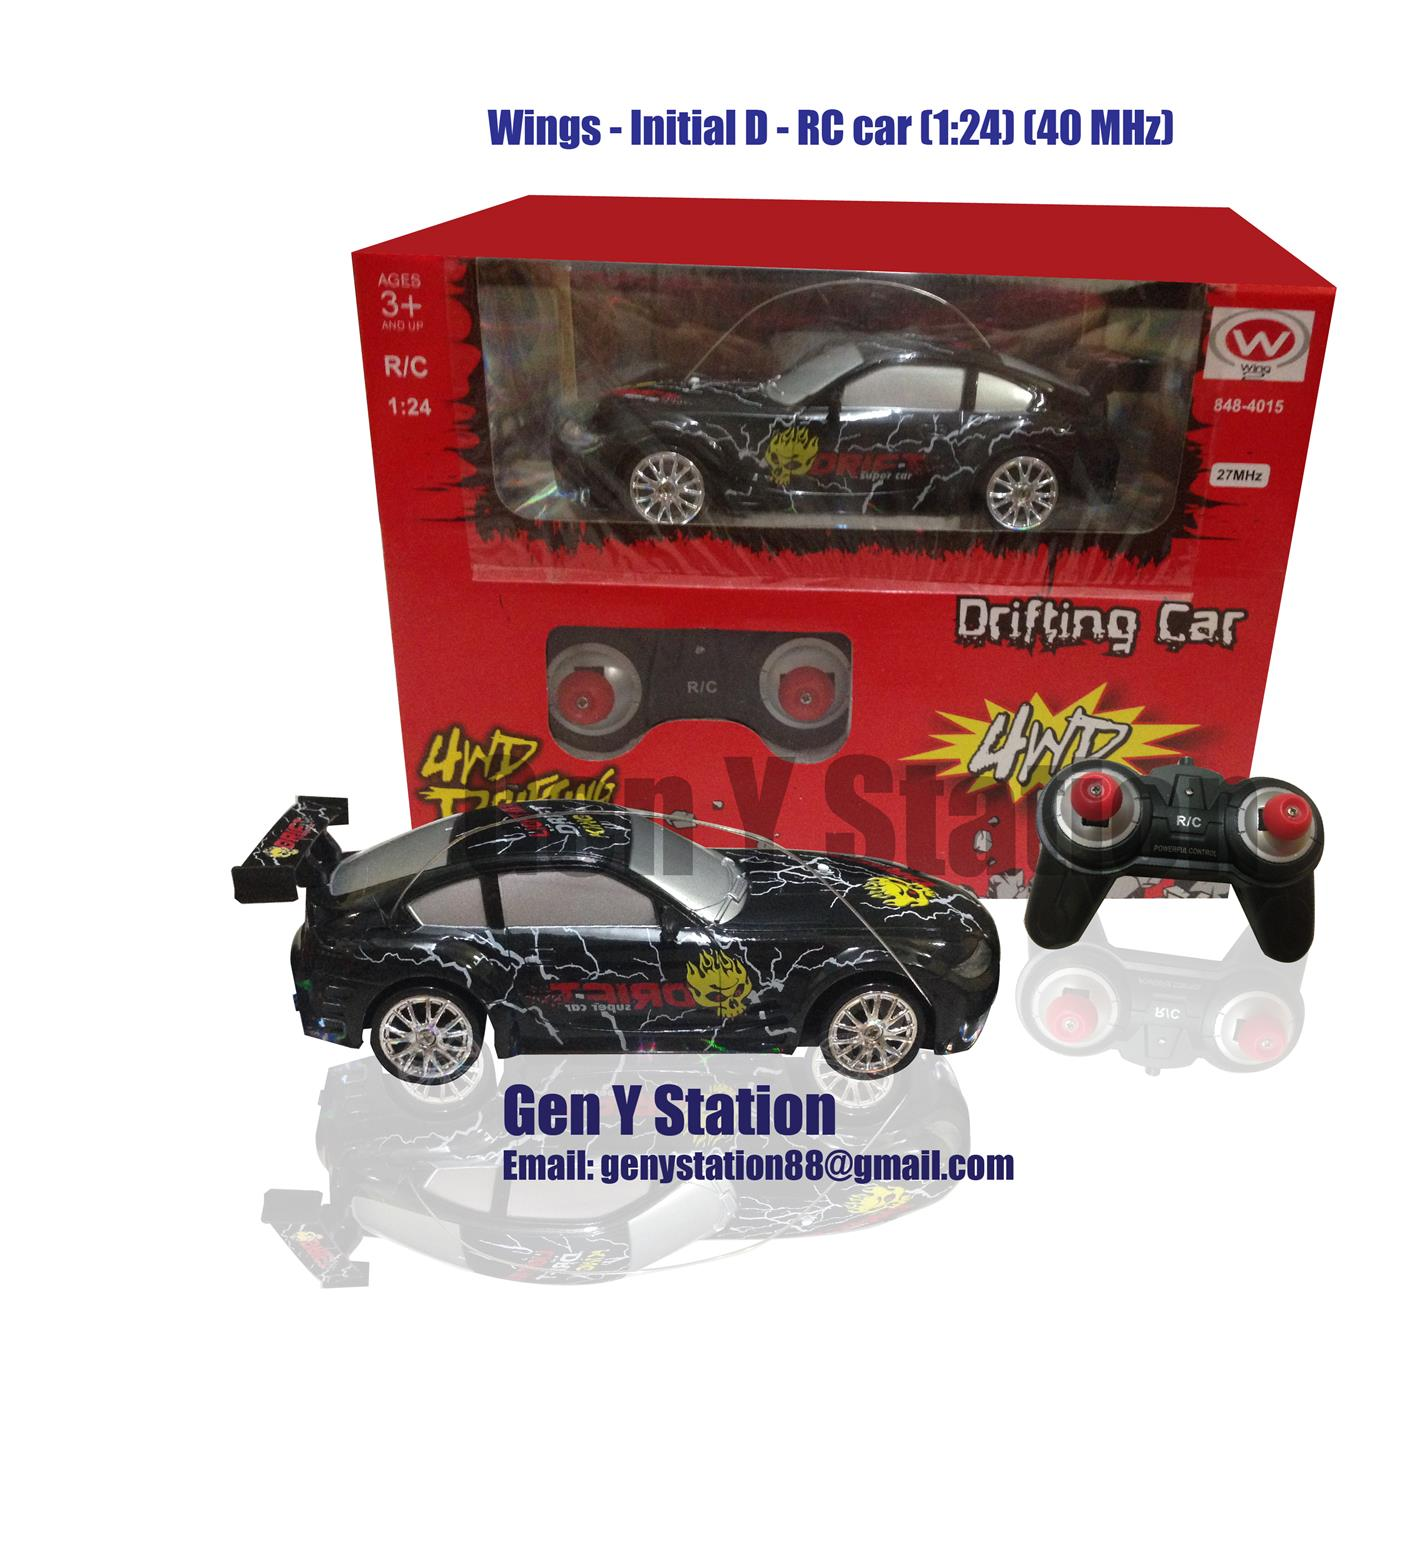 Wings R/C Remote Control Drifting 4WD Race Car 1/24 free 4 tyres